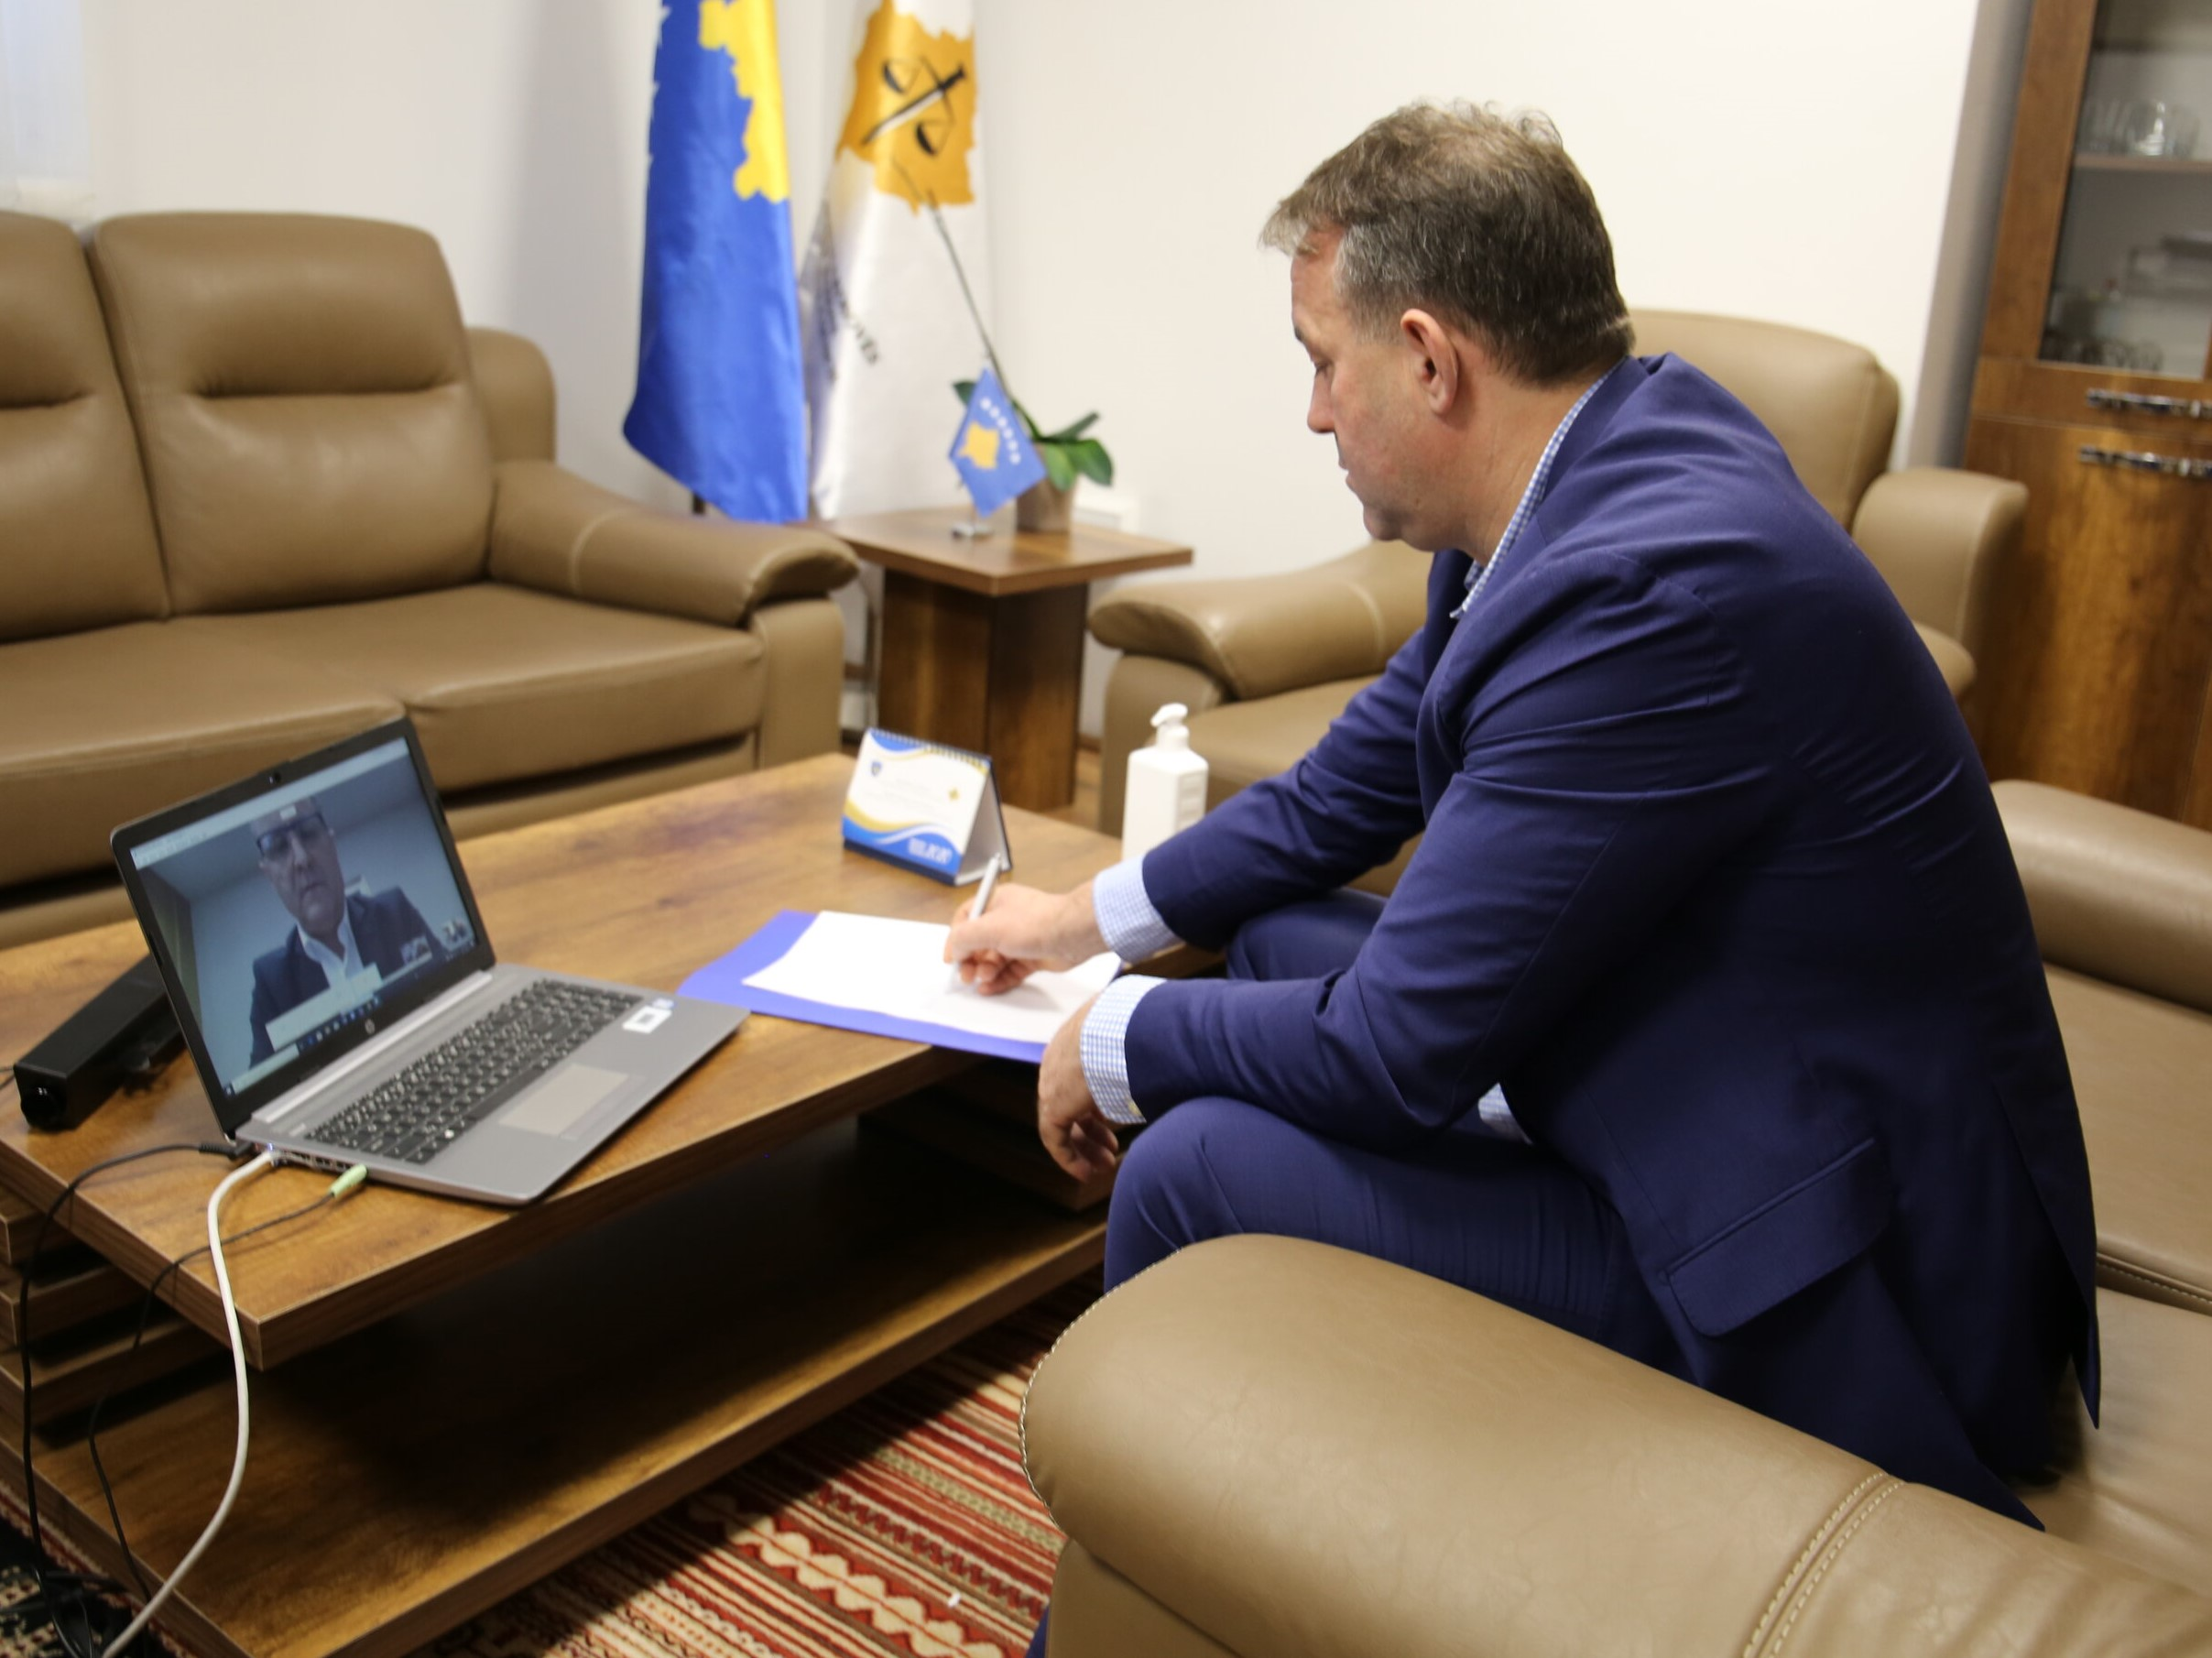 Cooperation with EULEX is appreciated